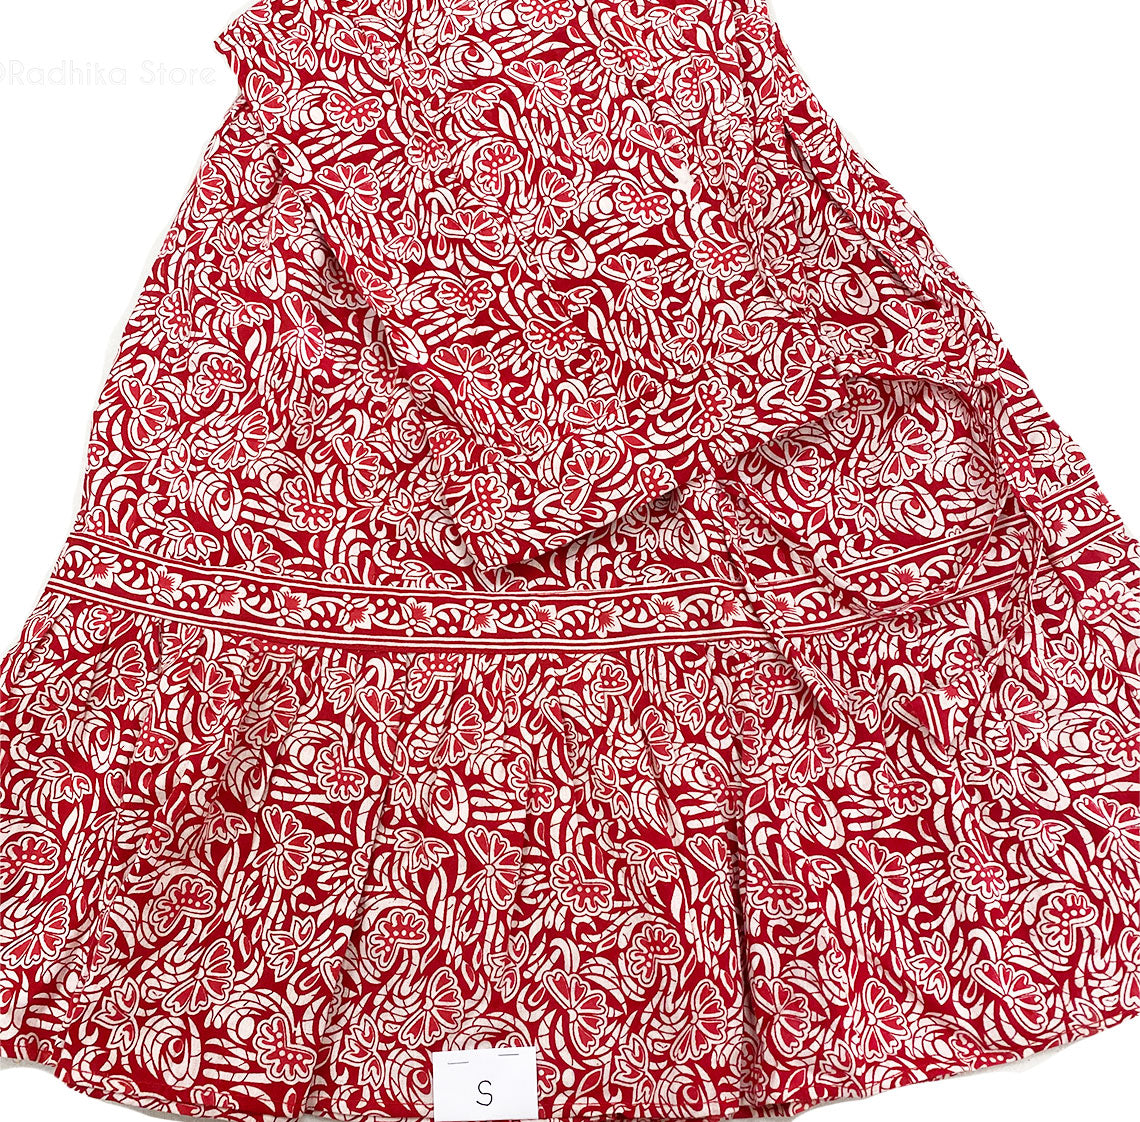 Gopi Skirt -Cotton -Sheer Red And White Flower- Block Print -With Choli and  Chadar -Choose  Size S